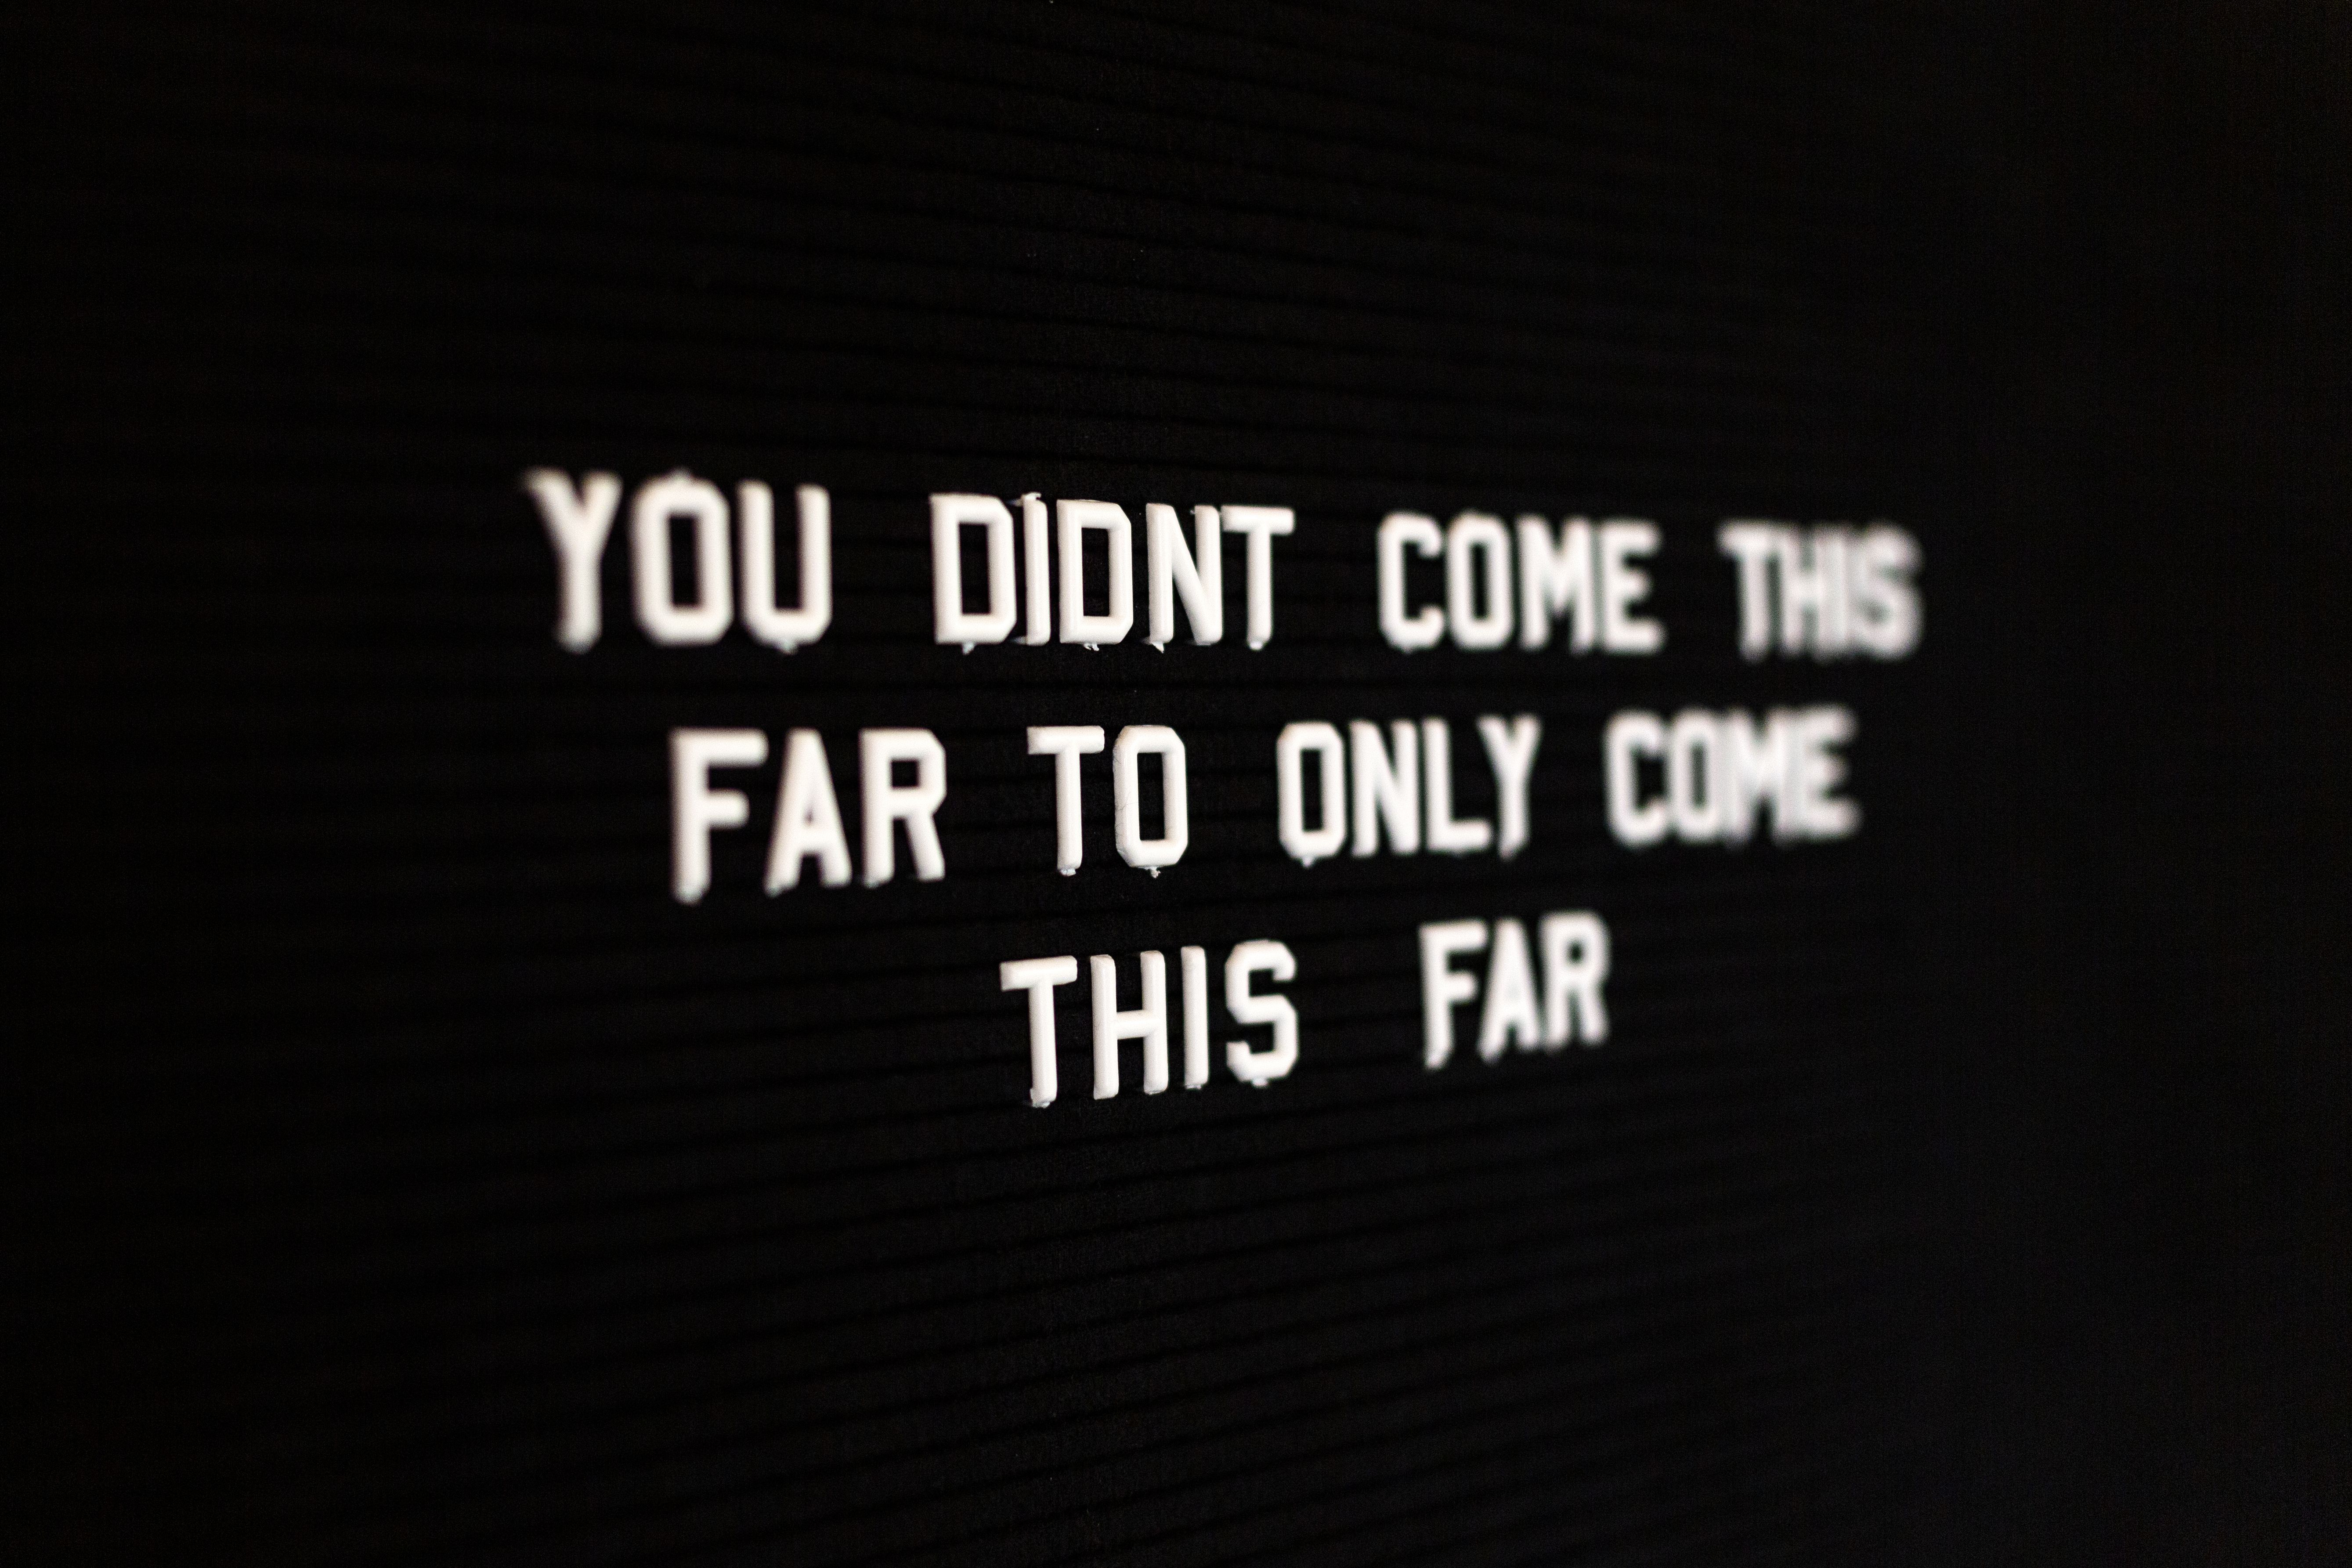 you have not come this far just to come this far